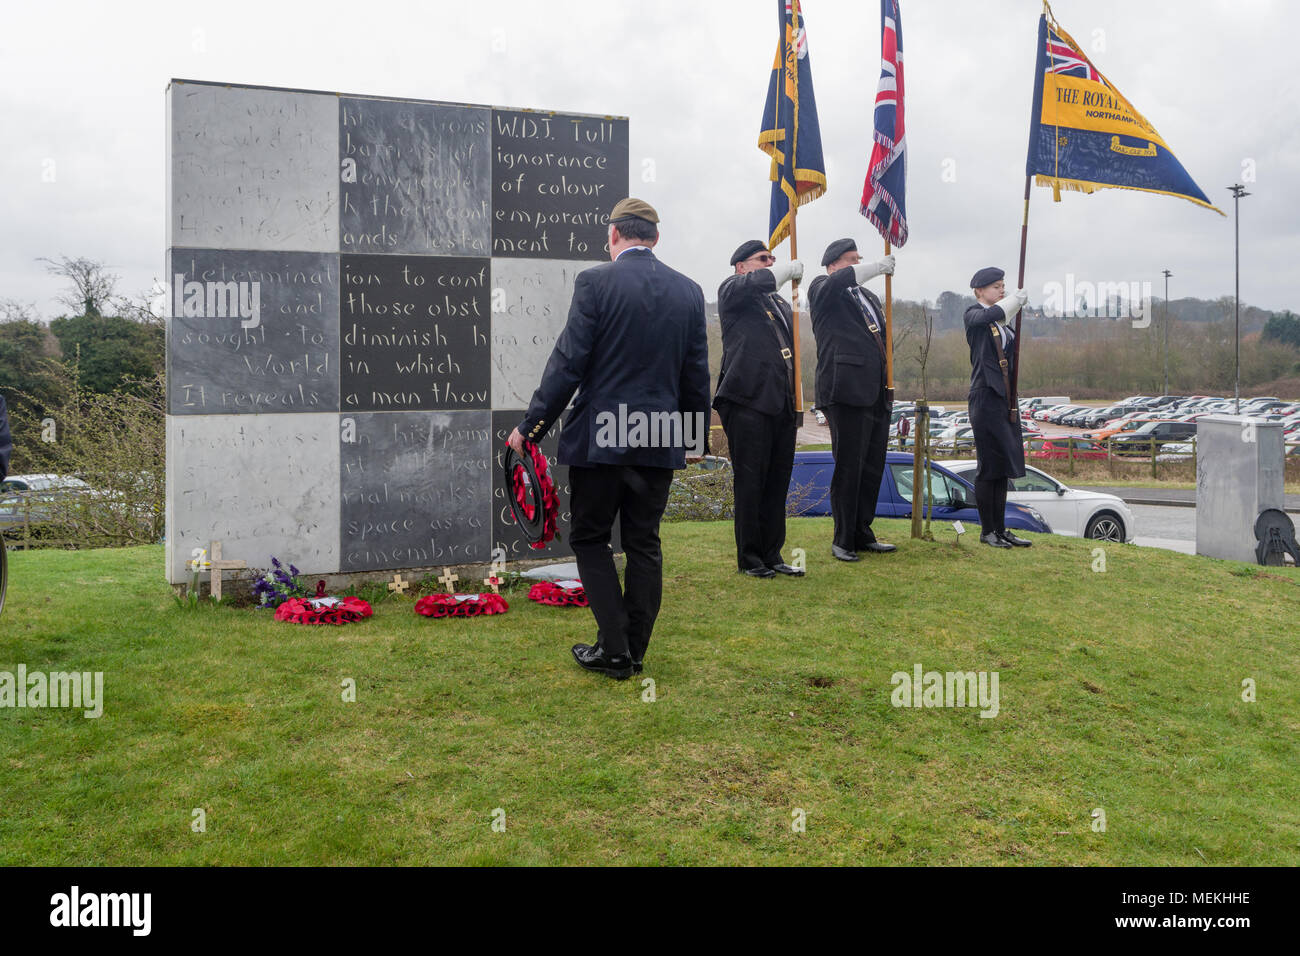 Wreath laying at the Walter Tull memorial, Sixfields, Northampton, UK; Tull was a Northampton Town footballer and the first black officer in WW1. - Stock Image